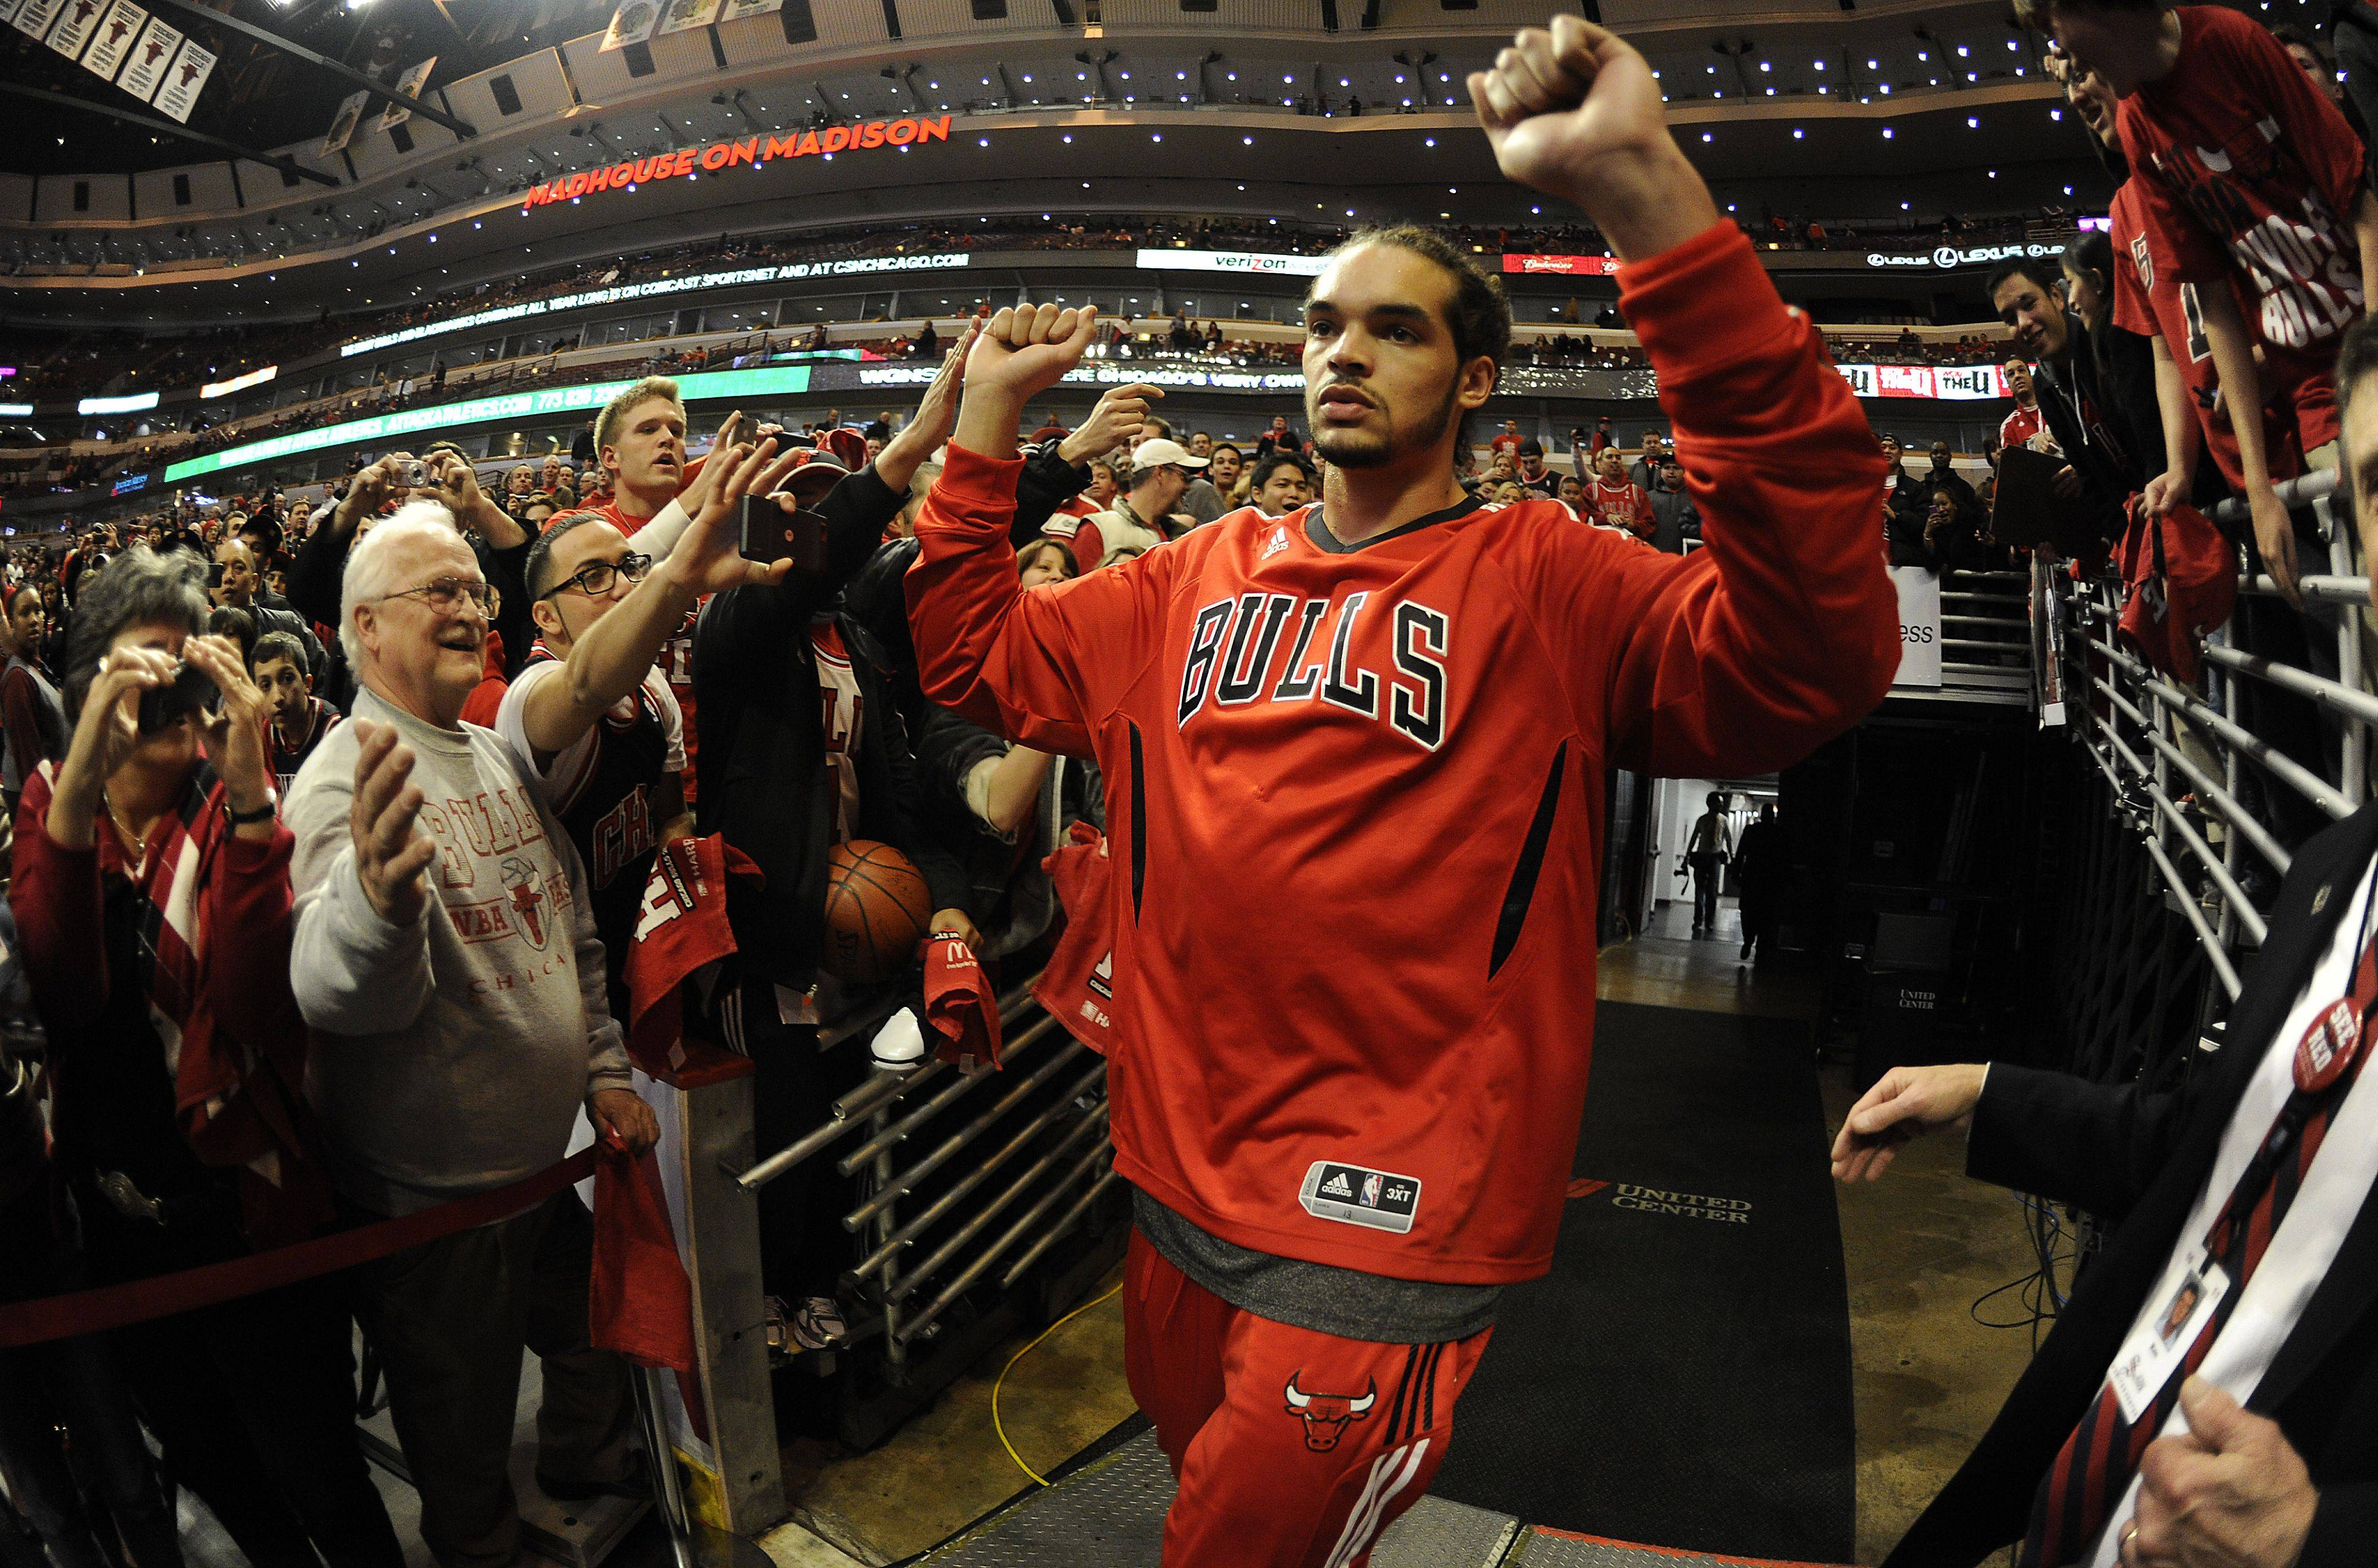 Joakim Noah enters the United Center floor.